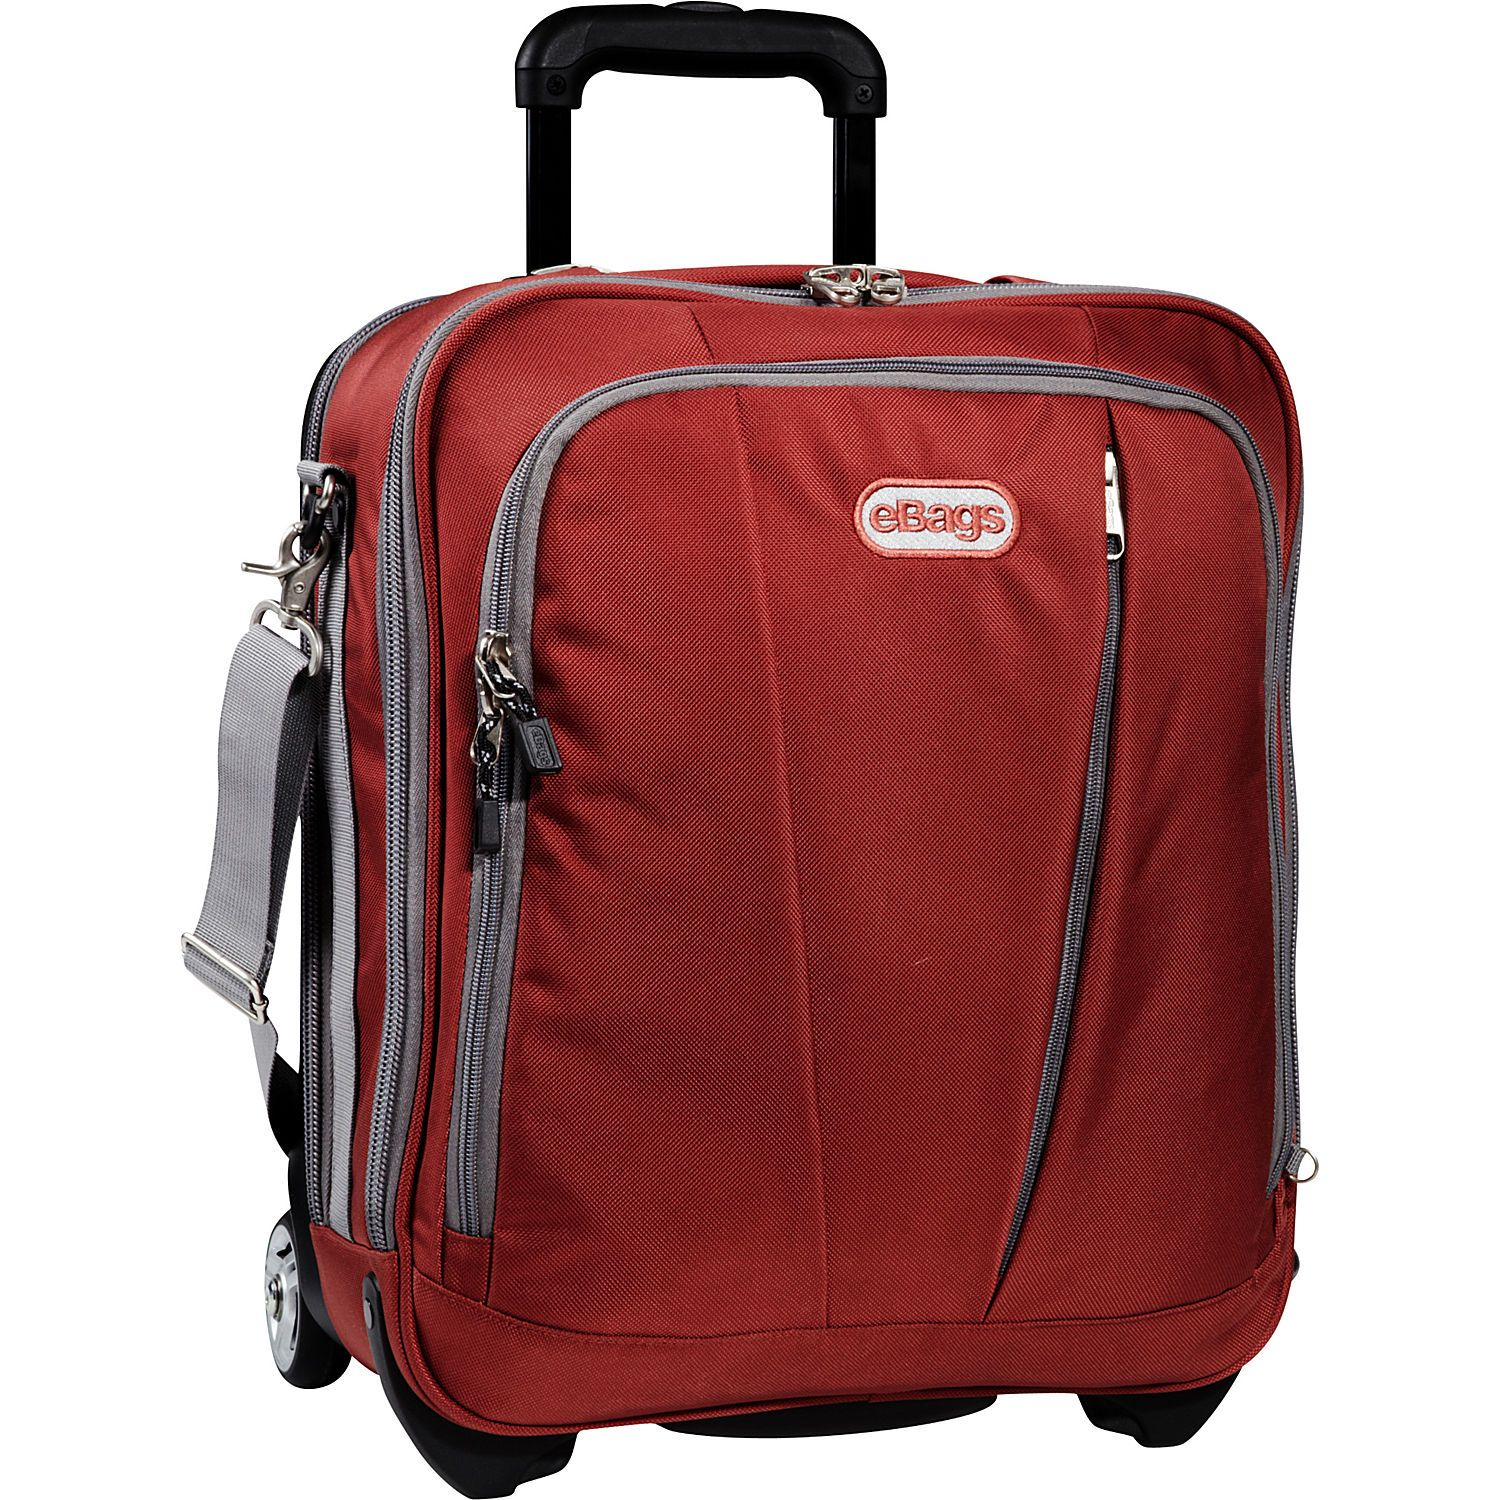 Ebags Tls Vertical Mobile Office Pinning This Only Because It S Such A Great Versatile